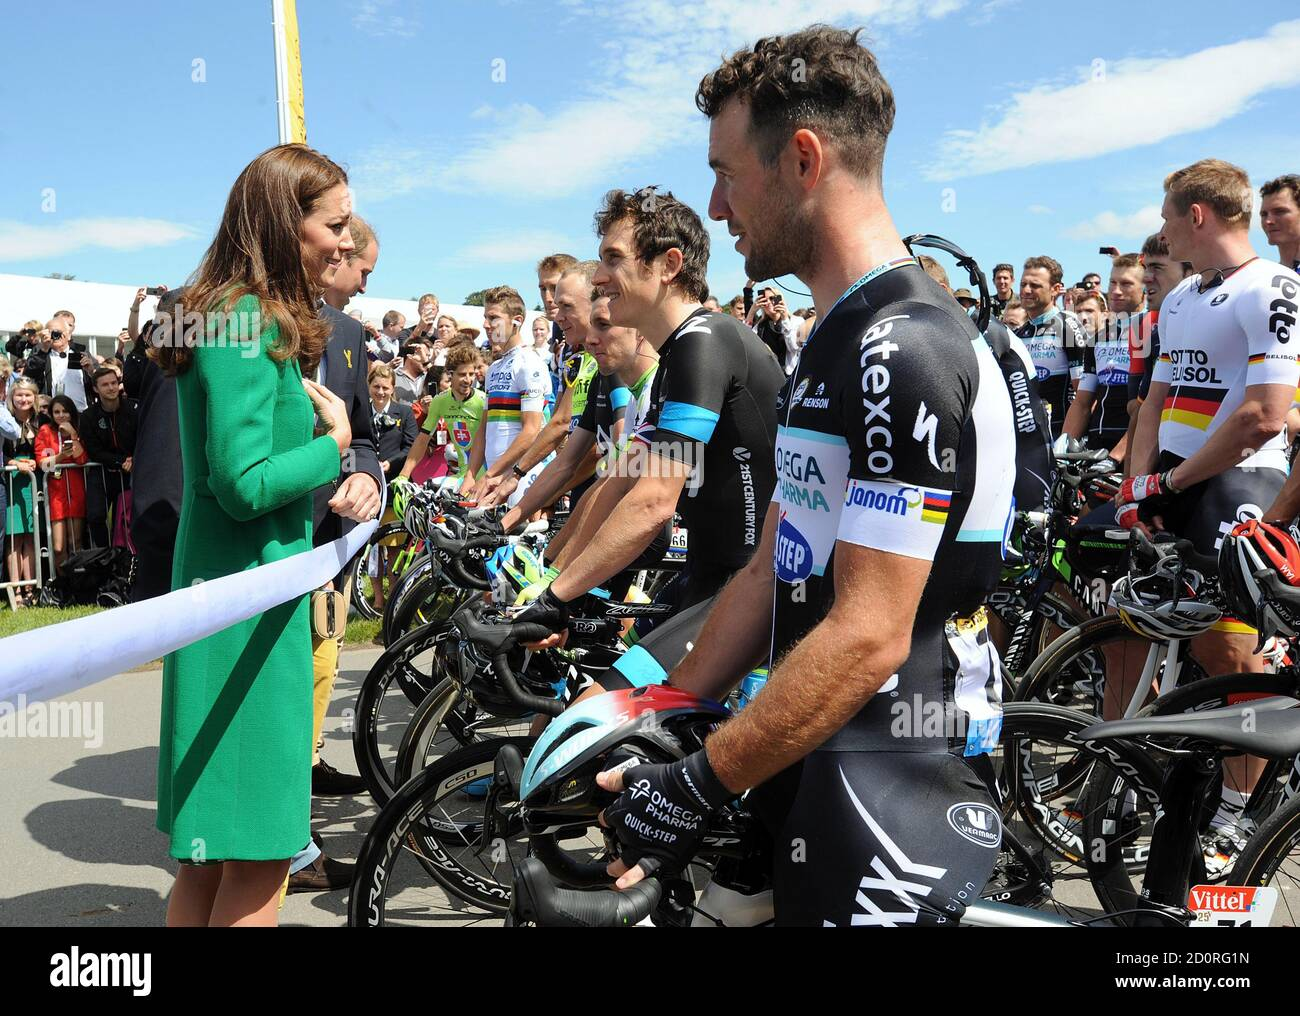 Page 3 Cycling In Cambridge High Resolution Stock Photography And Images Alamy